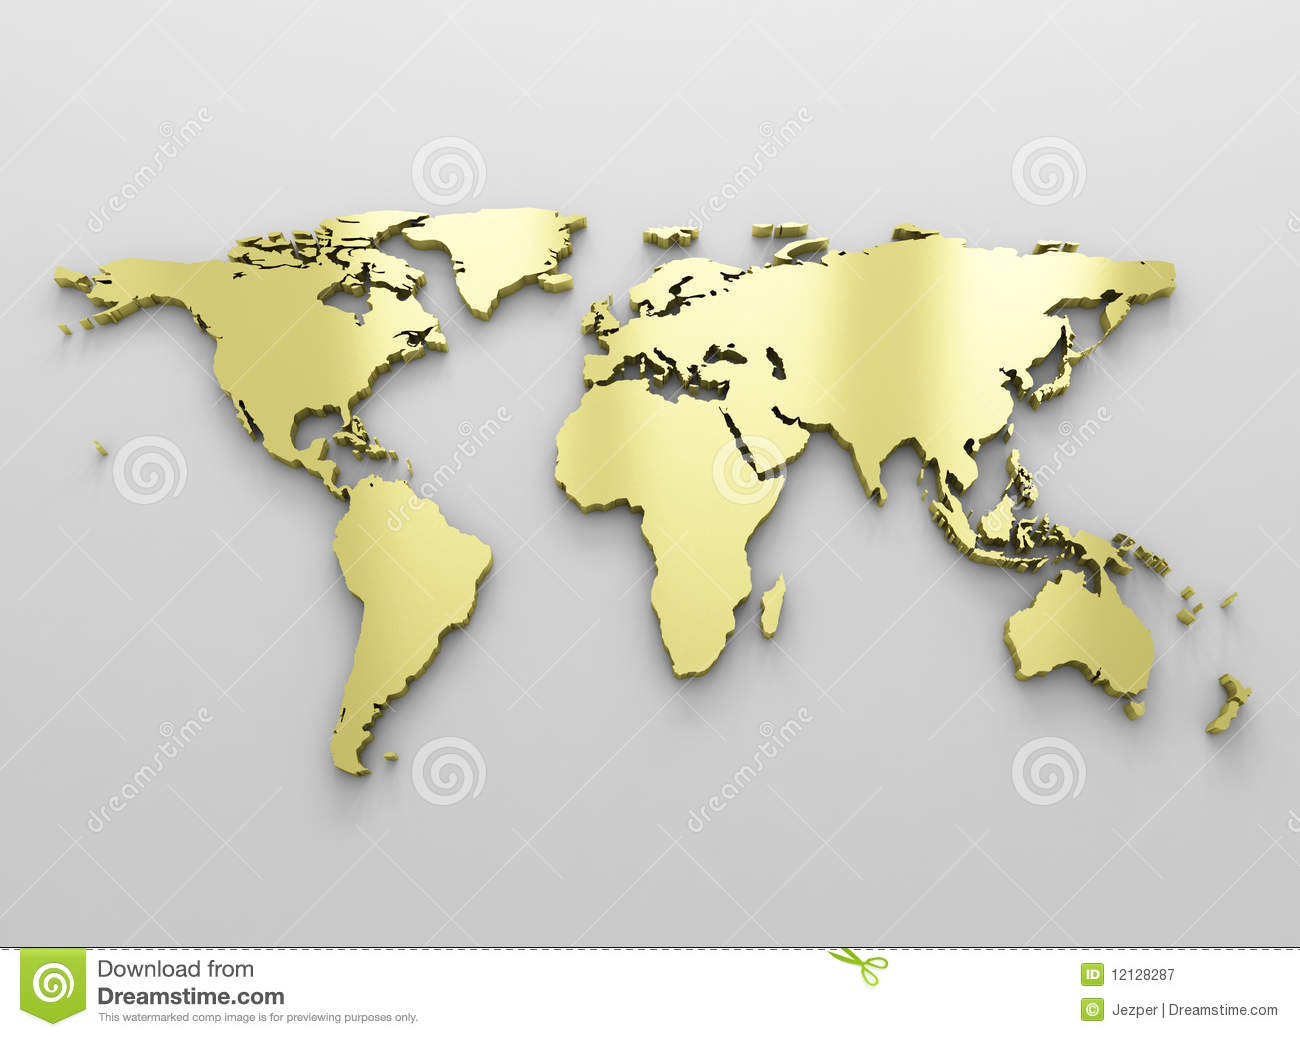 World map stock illustration illustration of geography 12128287 world map gumiabroncs Gallery